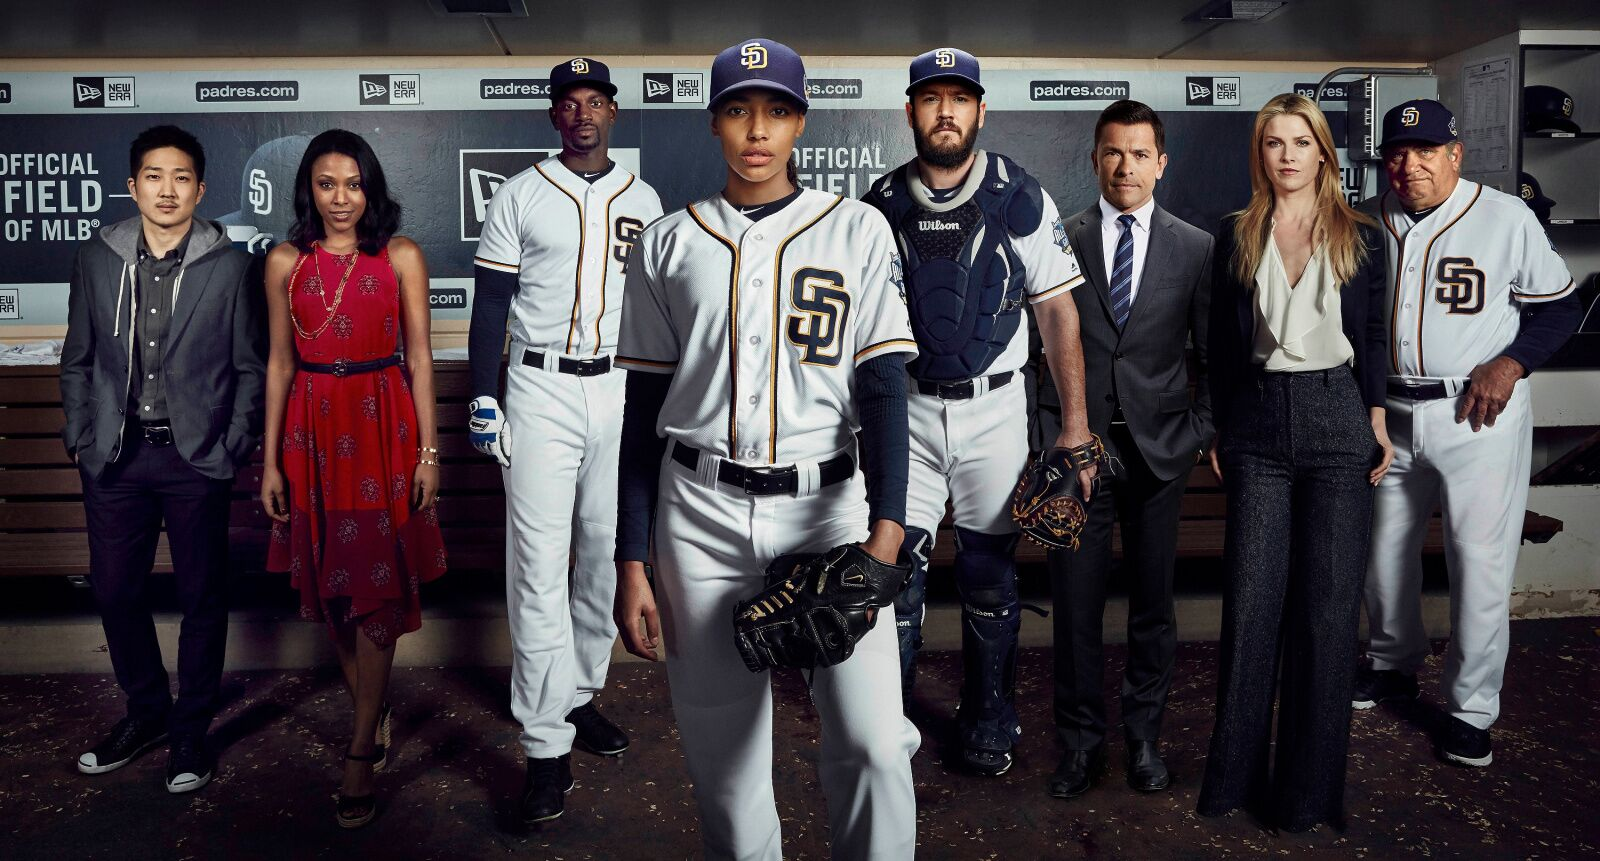 Pitch is the perfect carrot to keep This Is Us creator Dan Fogelman